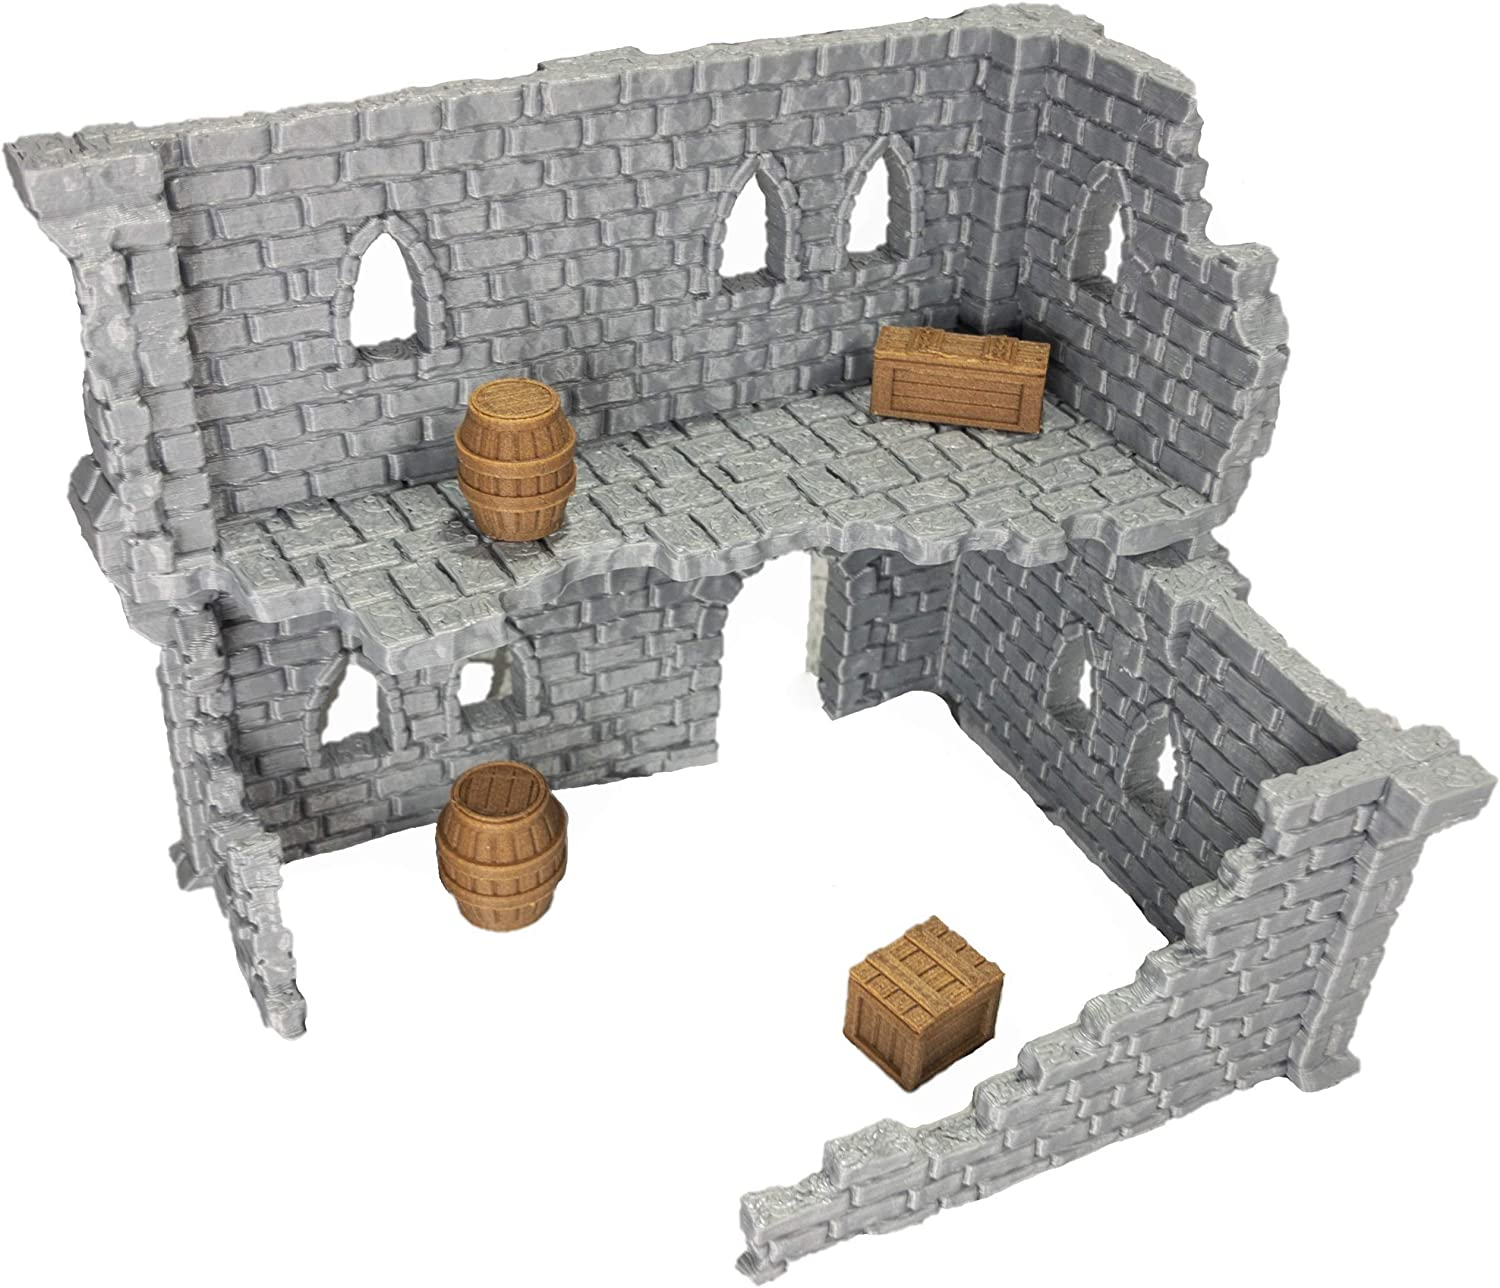 Ruin Rubble War Gaming Terrain for D/&D Table Top Gamers